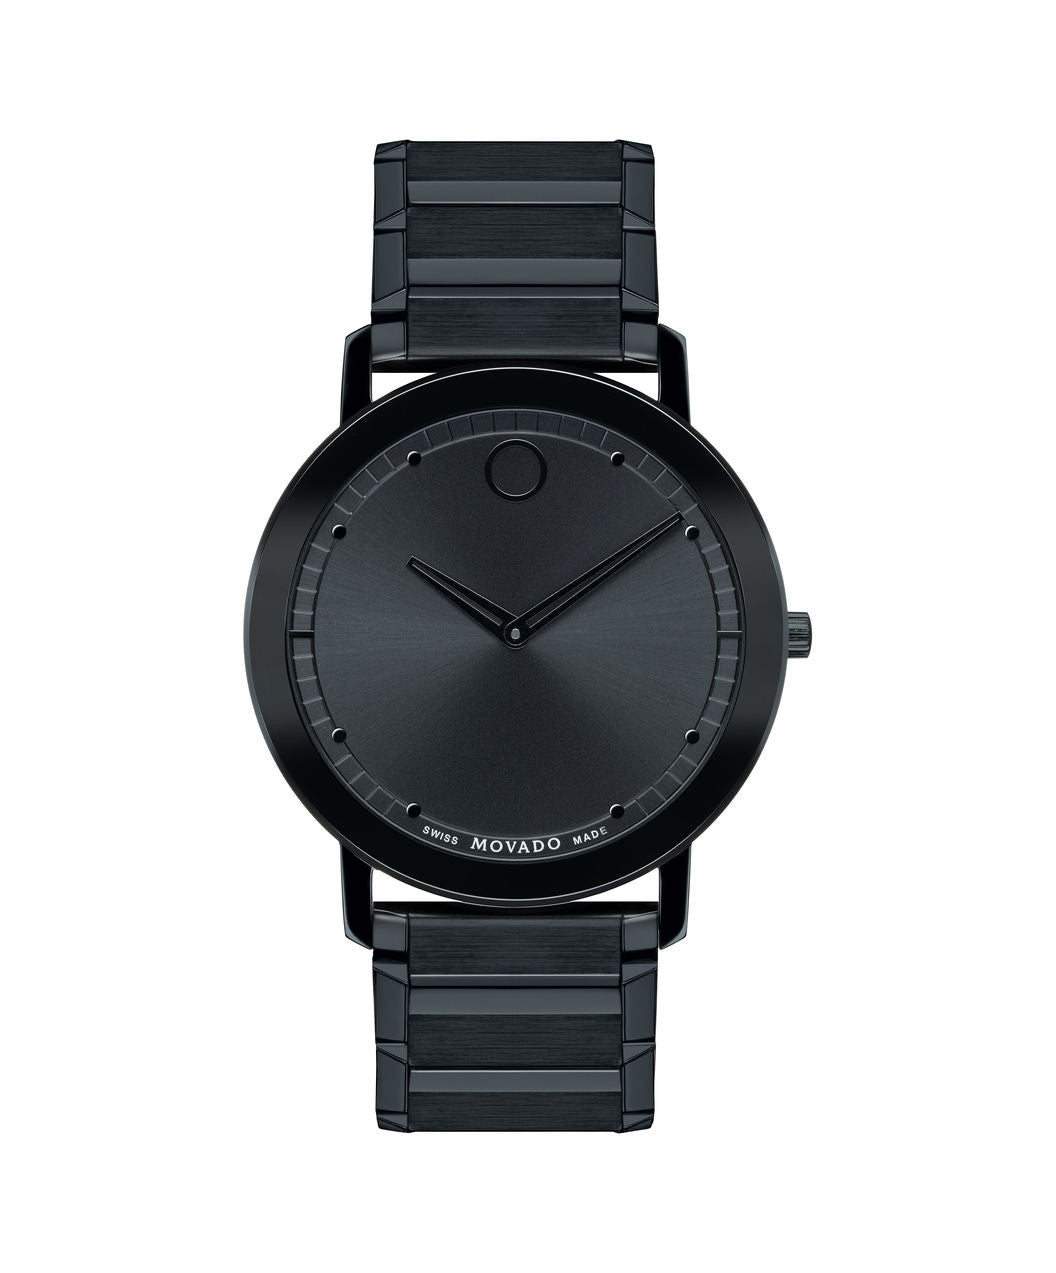 Movado Men's Sapphire Watch, Thin 40 mm Black PVD-Finished Stainless Steel Bezel-Free 0606882 - Arnik Jewellers